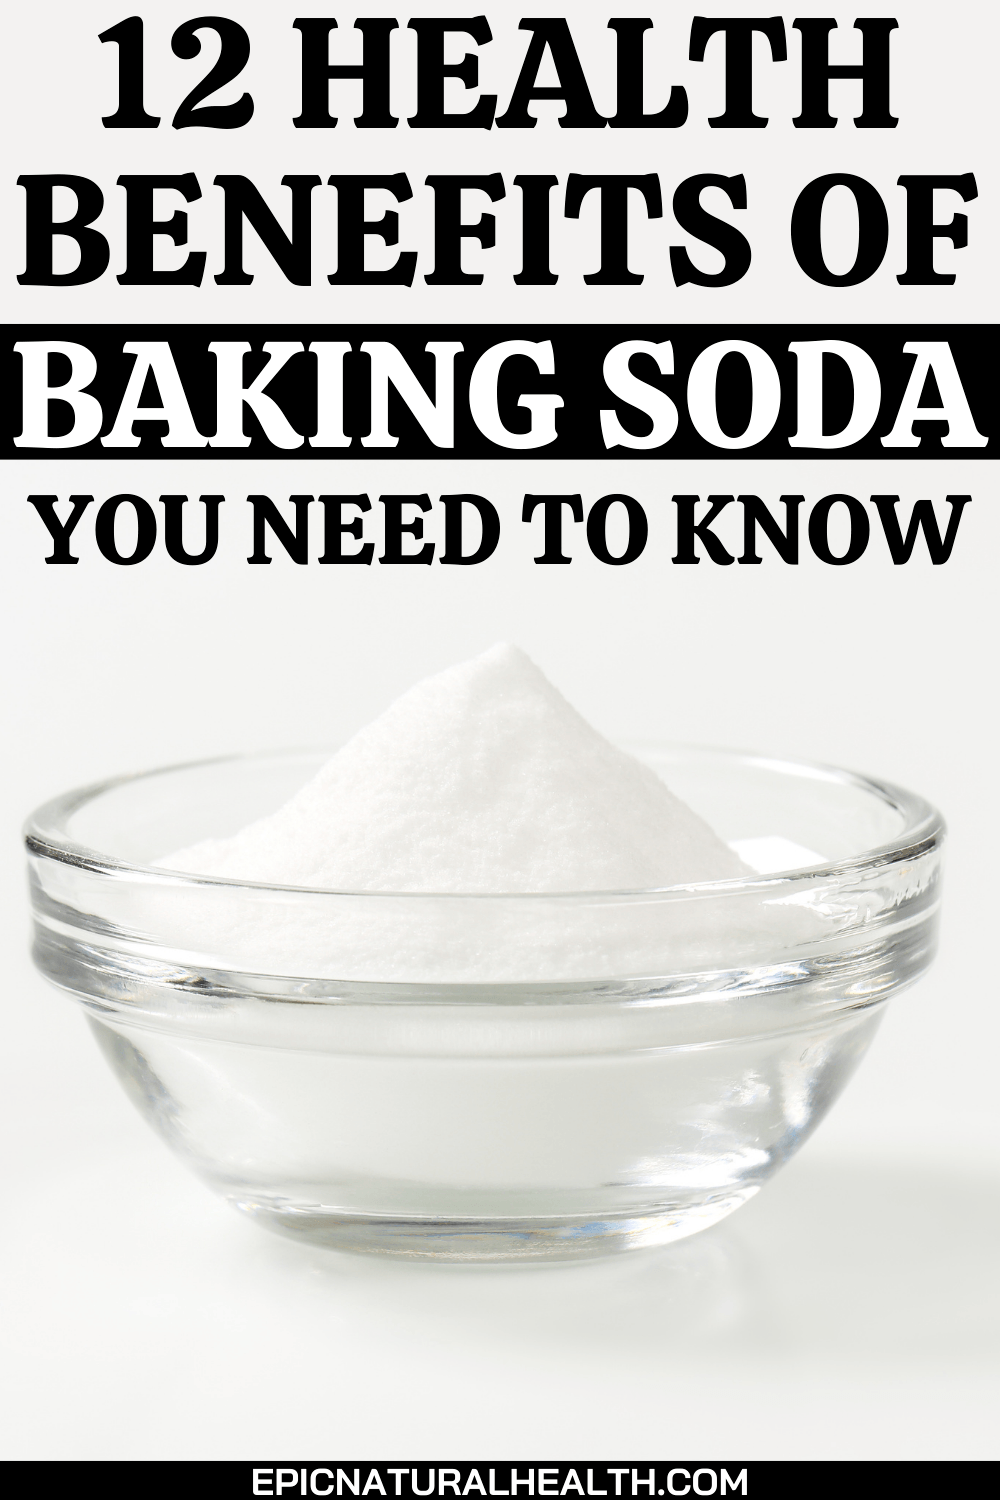 12 health benefits of baking soda you need to know